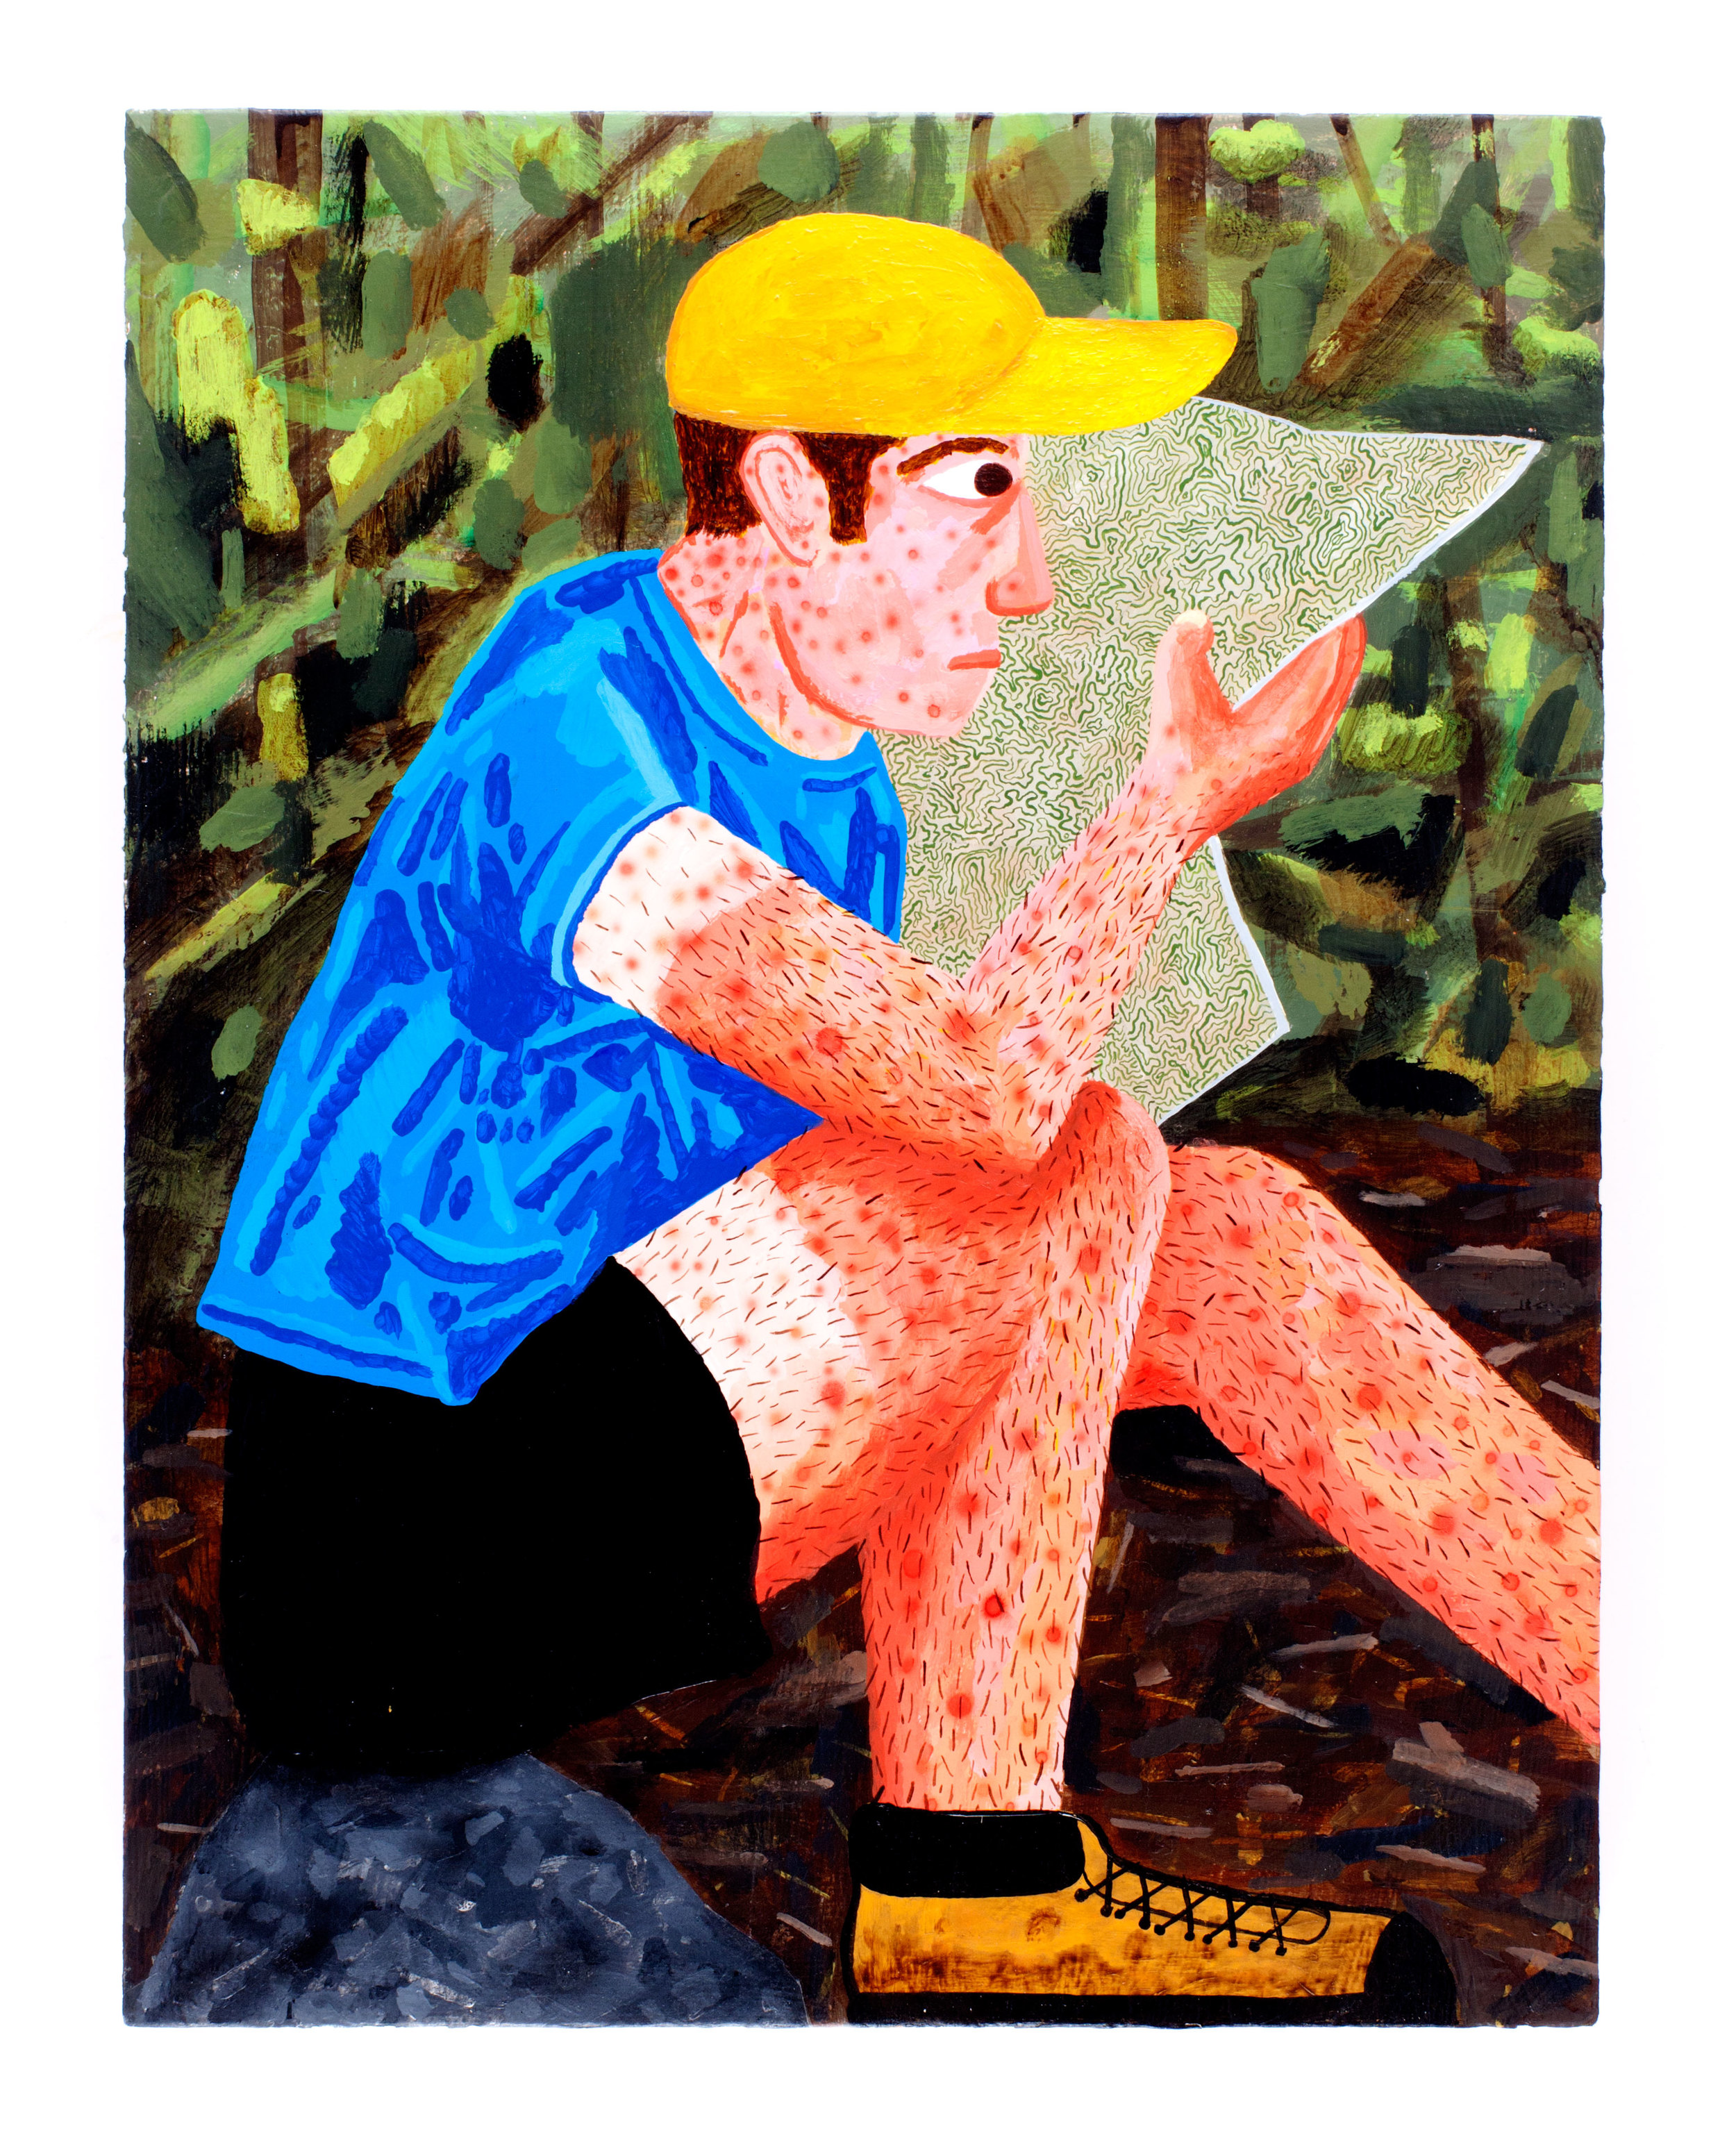 "Sad hiker- 20x24"" Acrylic on Panel"